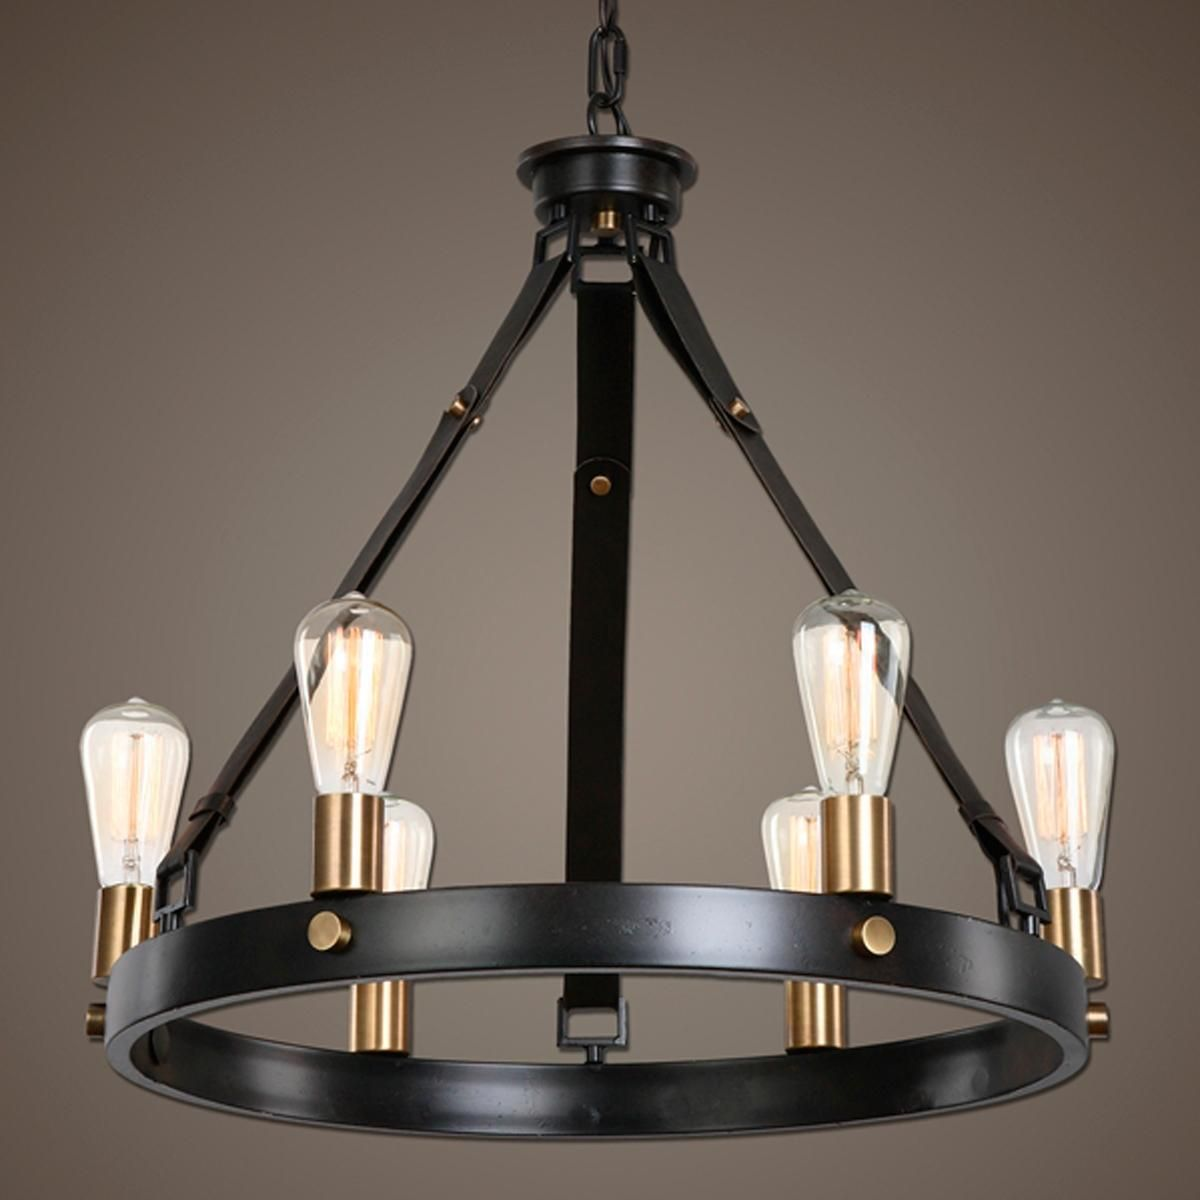 Leather Strap Mixed Metals Chandelier 6 Light Antique Bronze